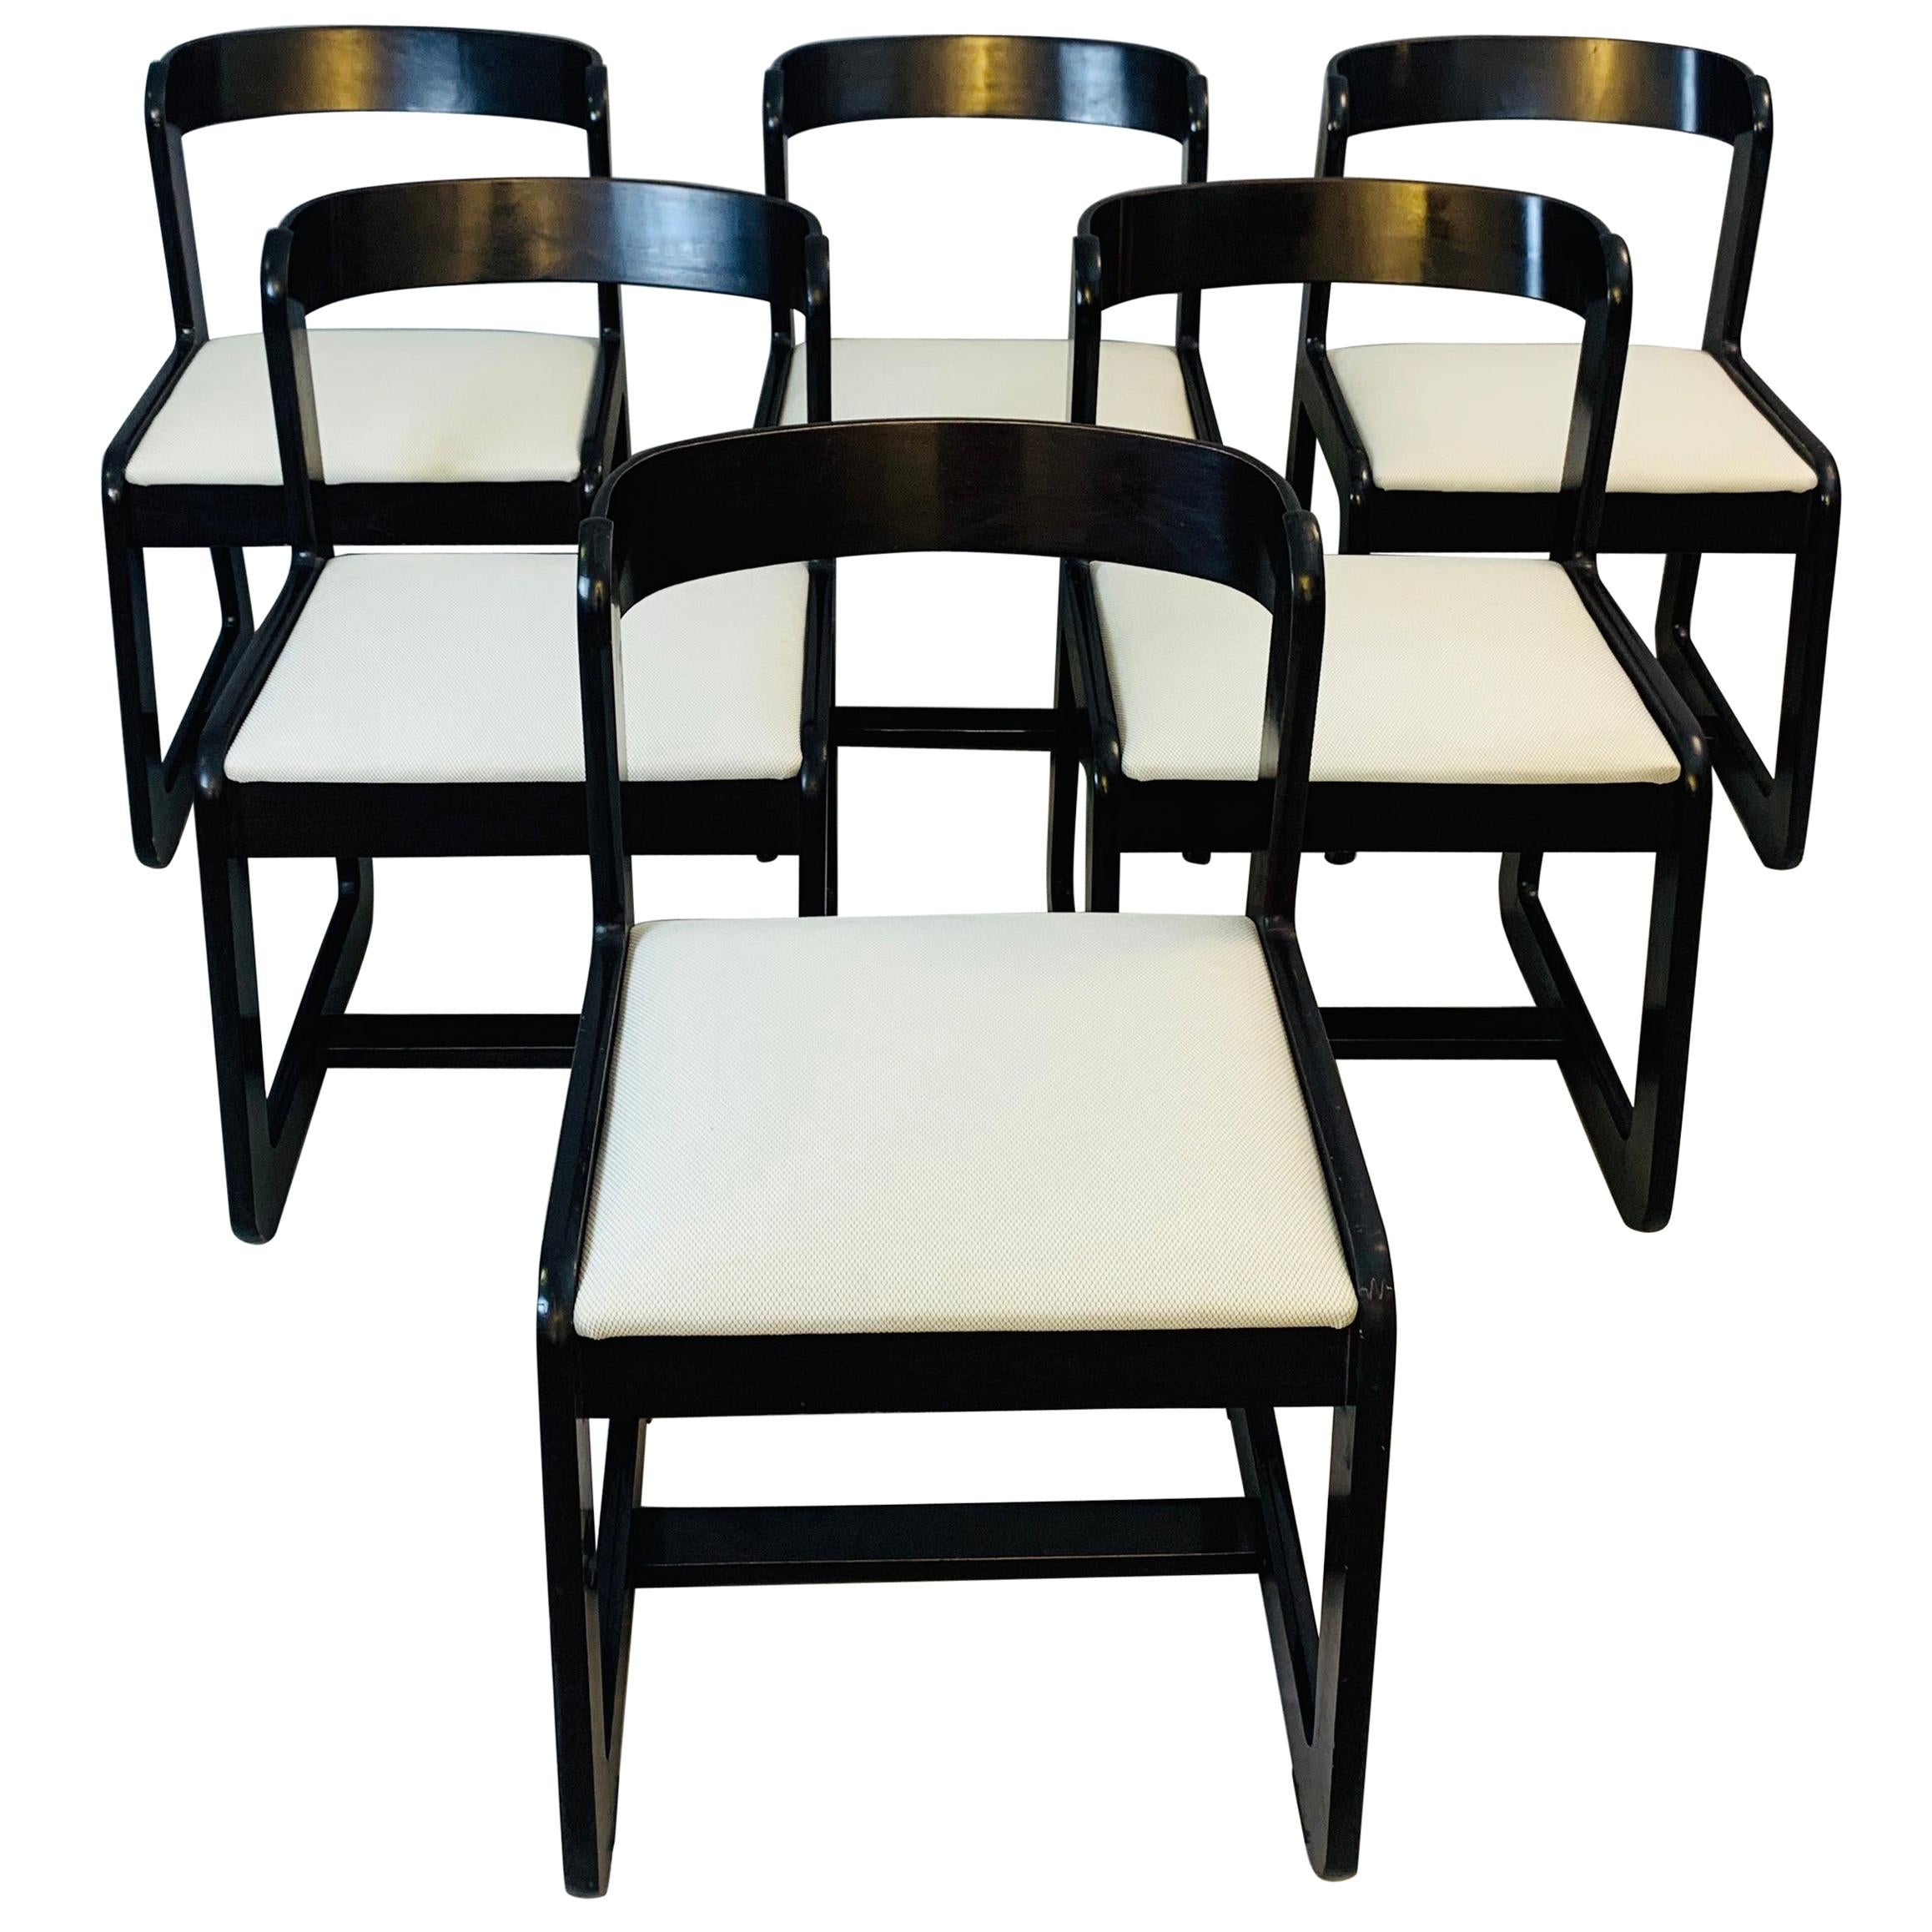 Set of 6 Chairs Attributed to Willy Rizzo